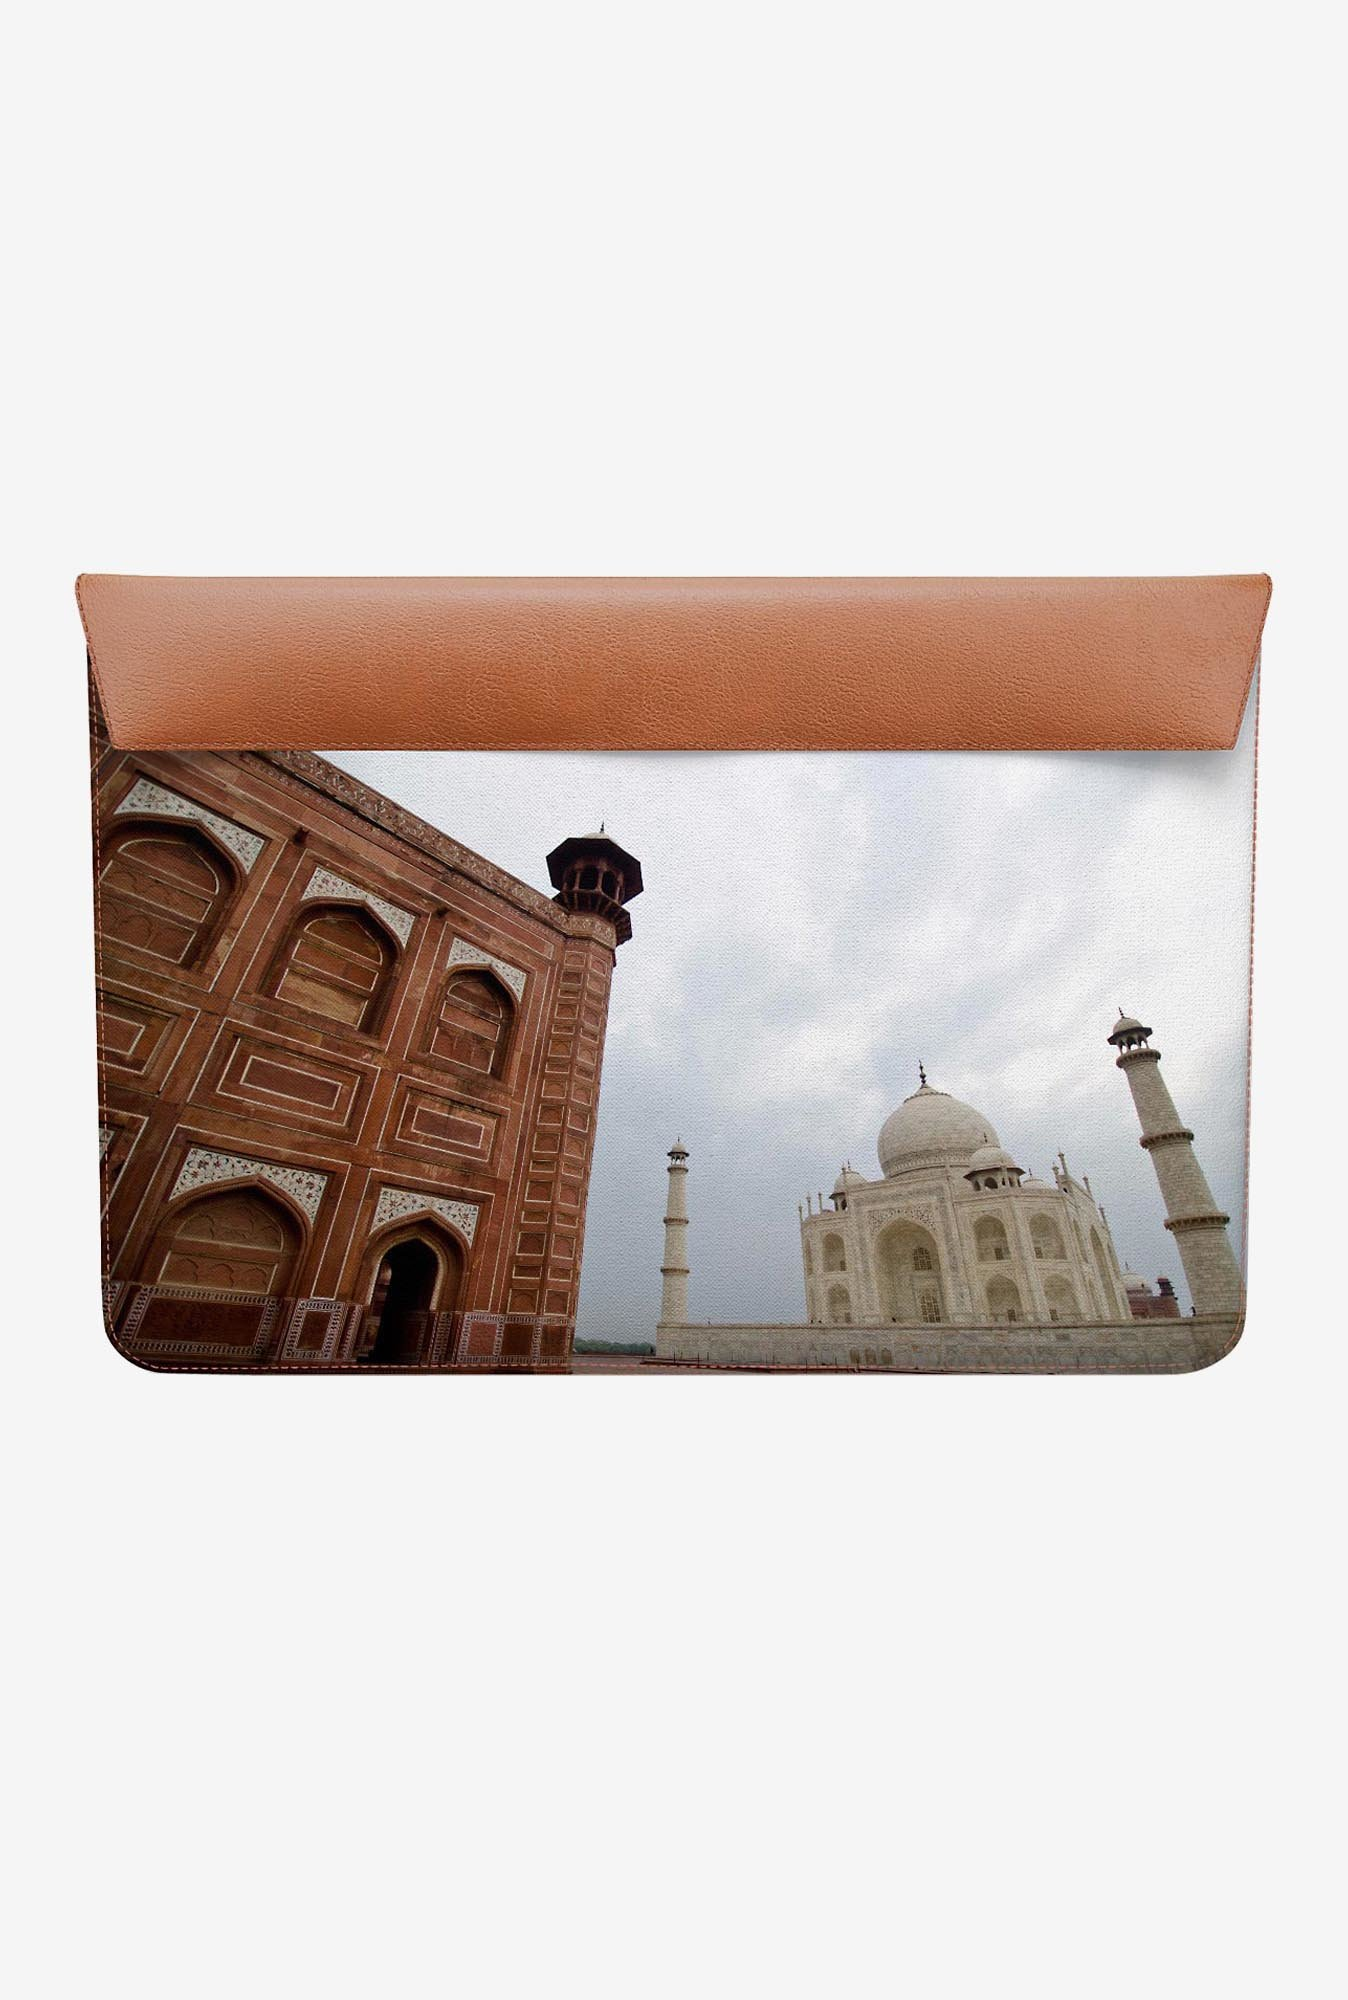 DailyObjects Taj Mahal MacBook Air 11 Envelope Sleeve